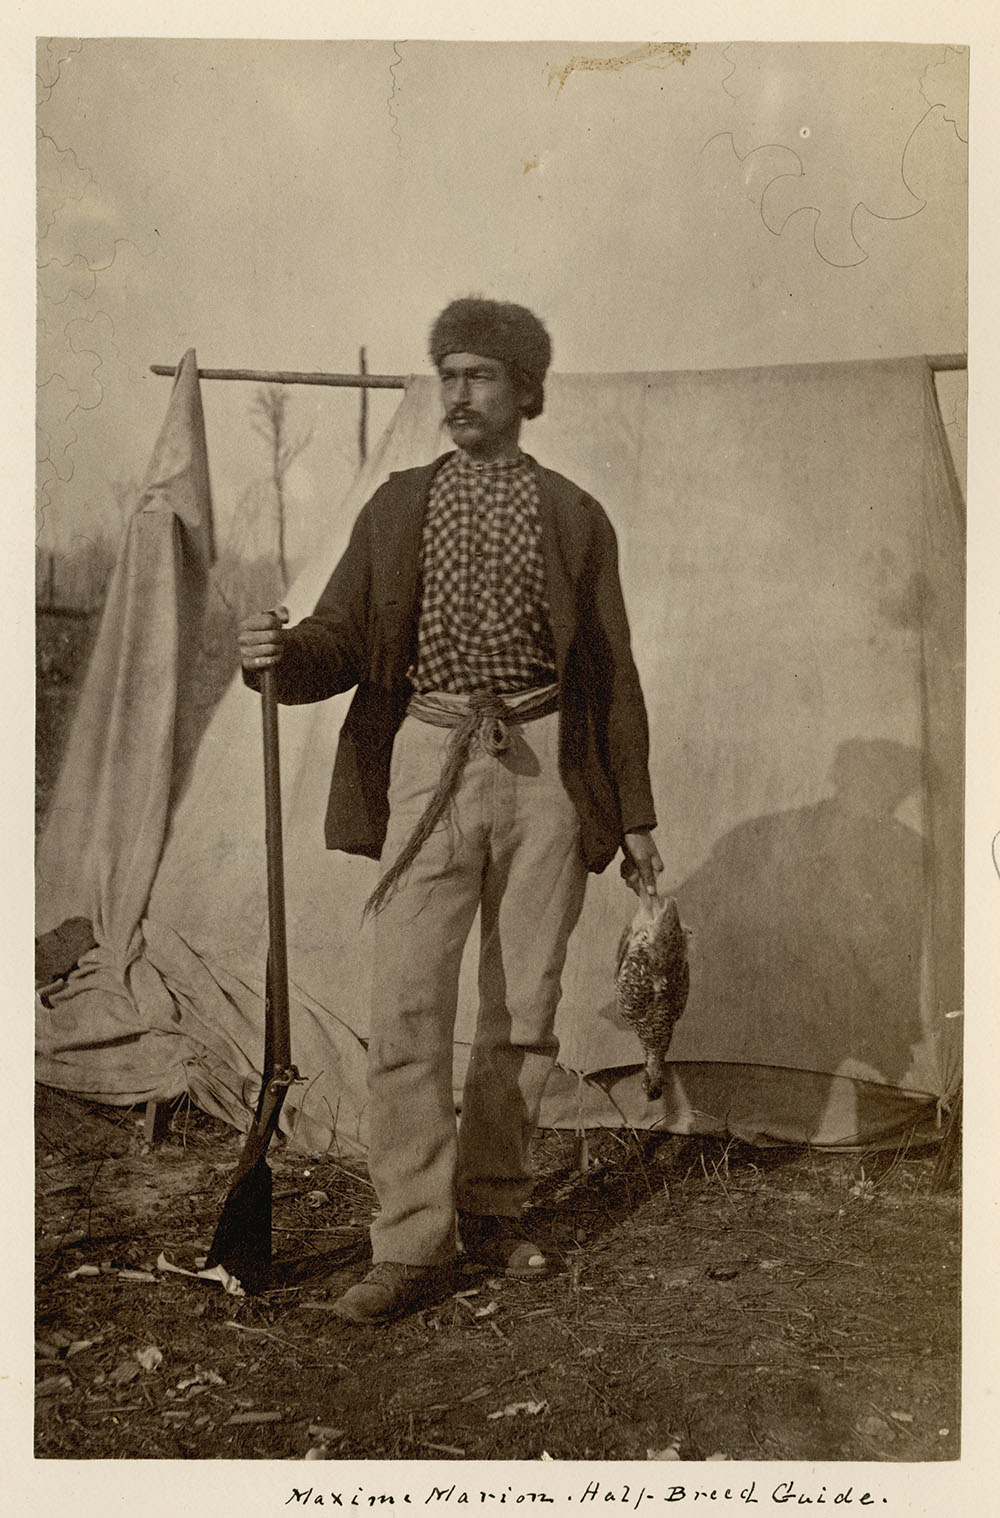 Black and white photograph of a man wearing a fur cap and a plaid shirt under a dark coloured jacket standing outside in front of a tent while holding a rifle and a dead grouse.